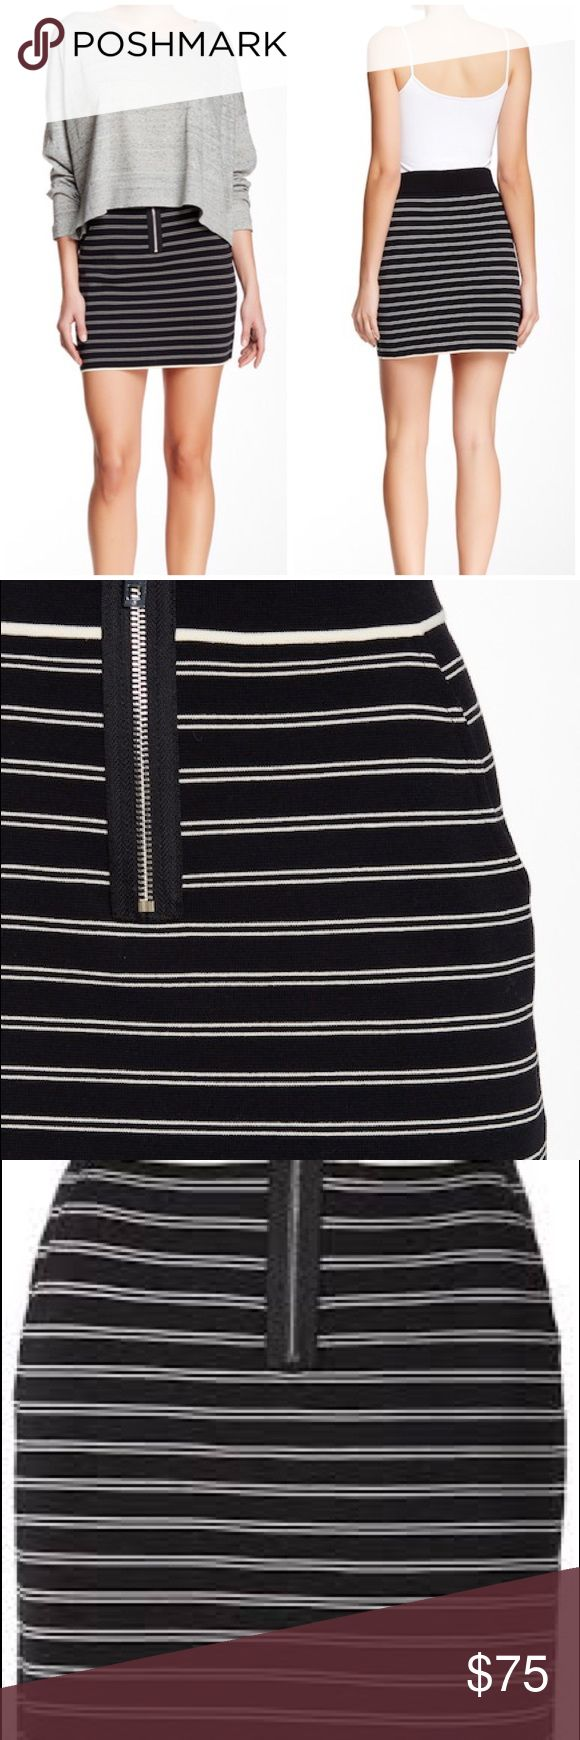 """rag & bone Regan front zip mini skirt A bodycon mini is cut from striped & stretchy knit cotton blend, then outfitted with a silver-tone zip closure and drop pockets. - Banded waist - Exposed front zip closure - Unlined - Imported Fiber Content Self: 75% cotton, 25% nylon Trim: 70% viscose, 30% spandex Care Dry clean Fit: this style fits true to size. Waist across 14"""". Length 17.75"""". Brand new with tag. Retail price $295. Smoke free and pet free. rag & bone Skirts Mini"""